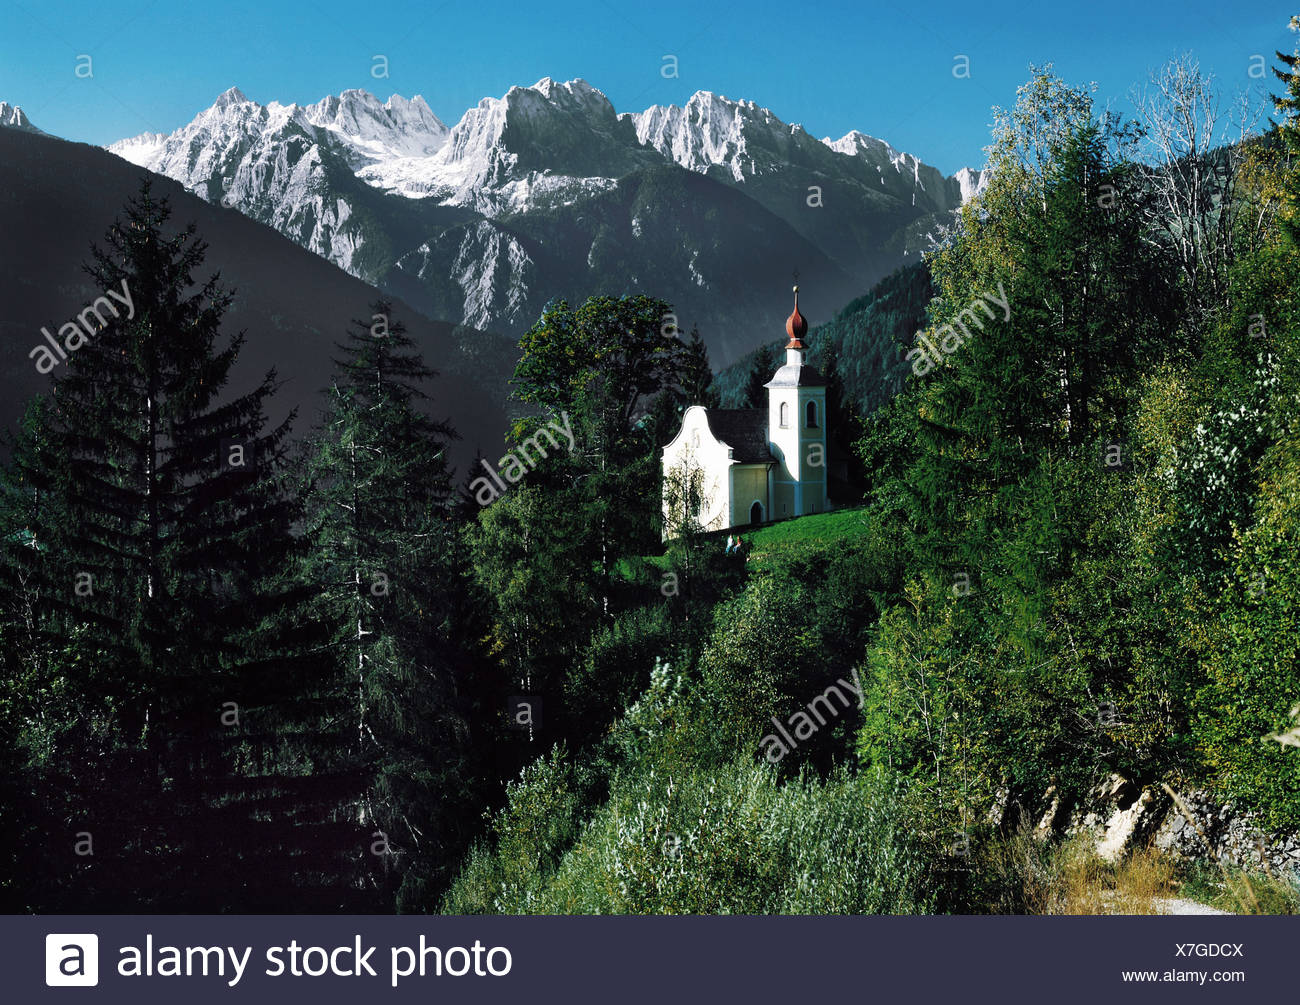 geography / travel, Austria, Tyrol, Prägraten am Grossvenediger, view towards the village, church, Virgen Valley, Maurerberge, Additional-Rights-Clearance-Info-Not-Available - Stock Image